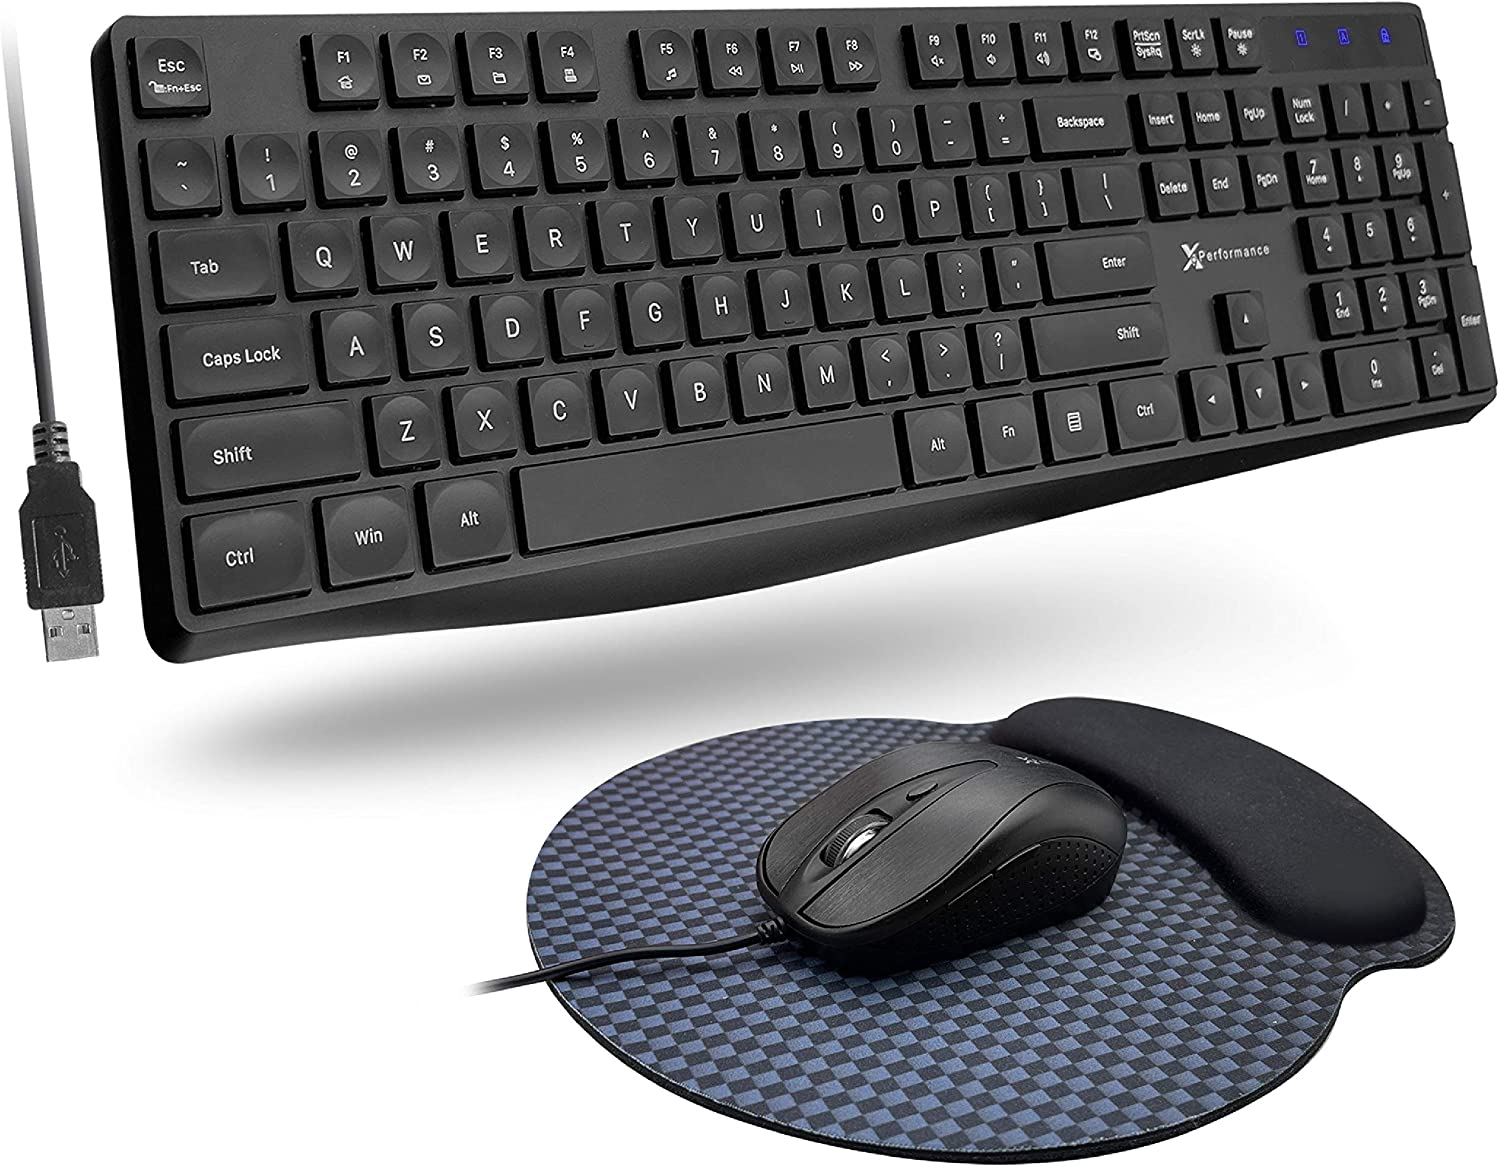 X9 Performance USB Wired Keyboard and Mouse Combo with Memory Foam Padded Mouse Pad - 104 Key Full Size Keyboard Mouse Combo with 5FT Cable for PC | Chrome - (4 DPI Modes) Optical Mouse Keyboard Combo